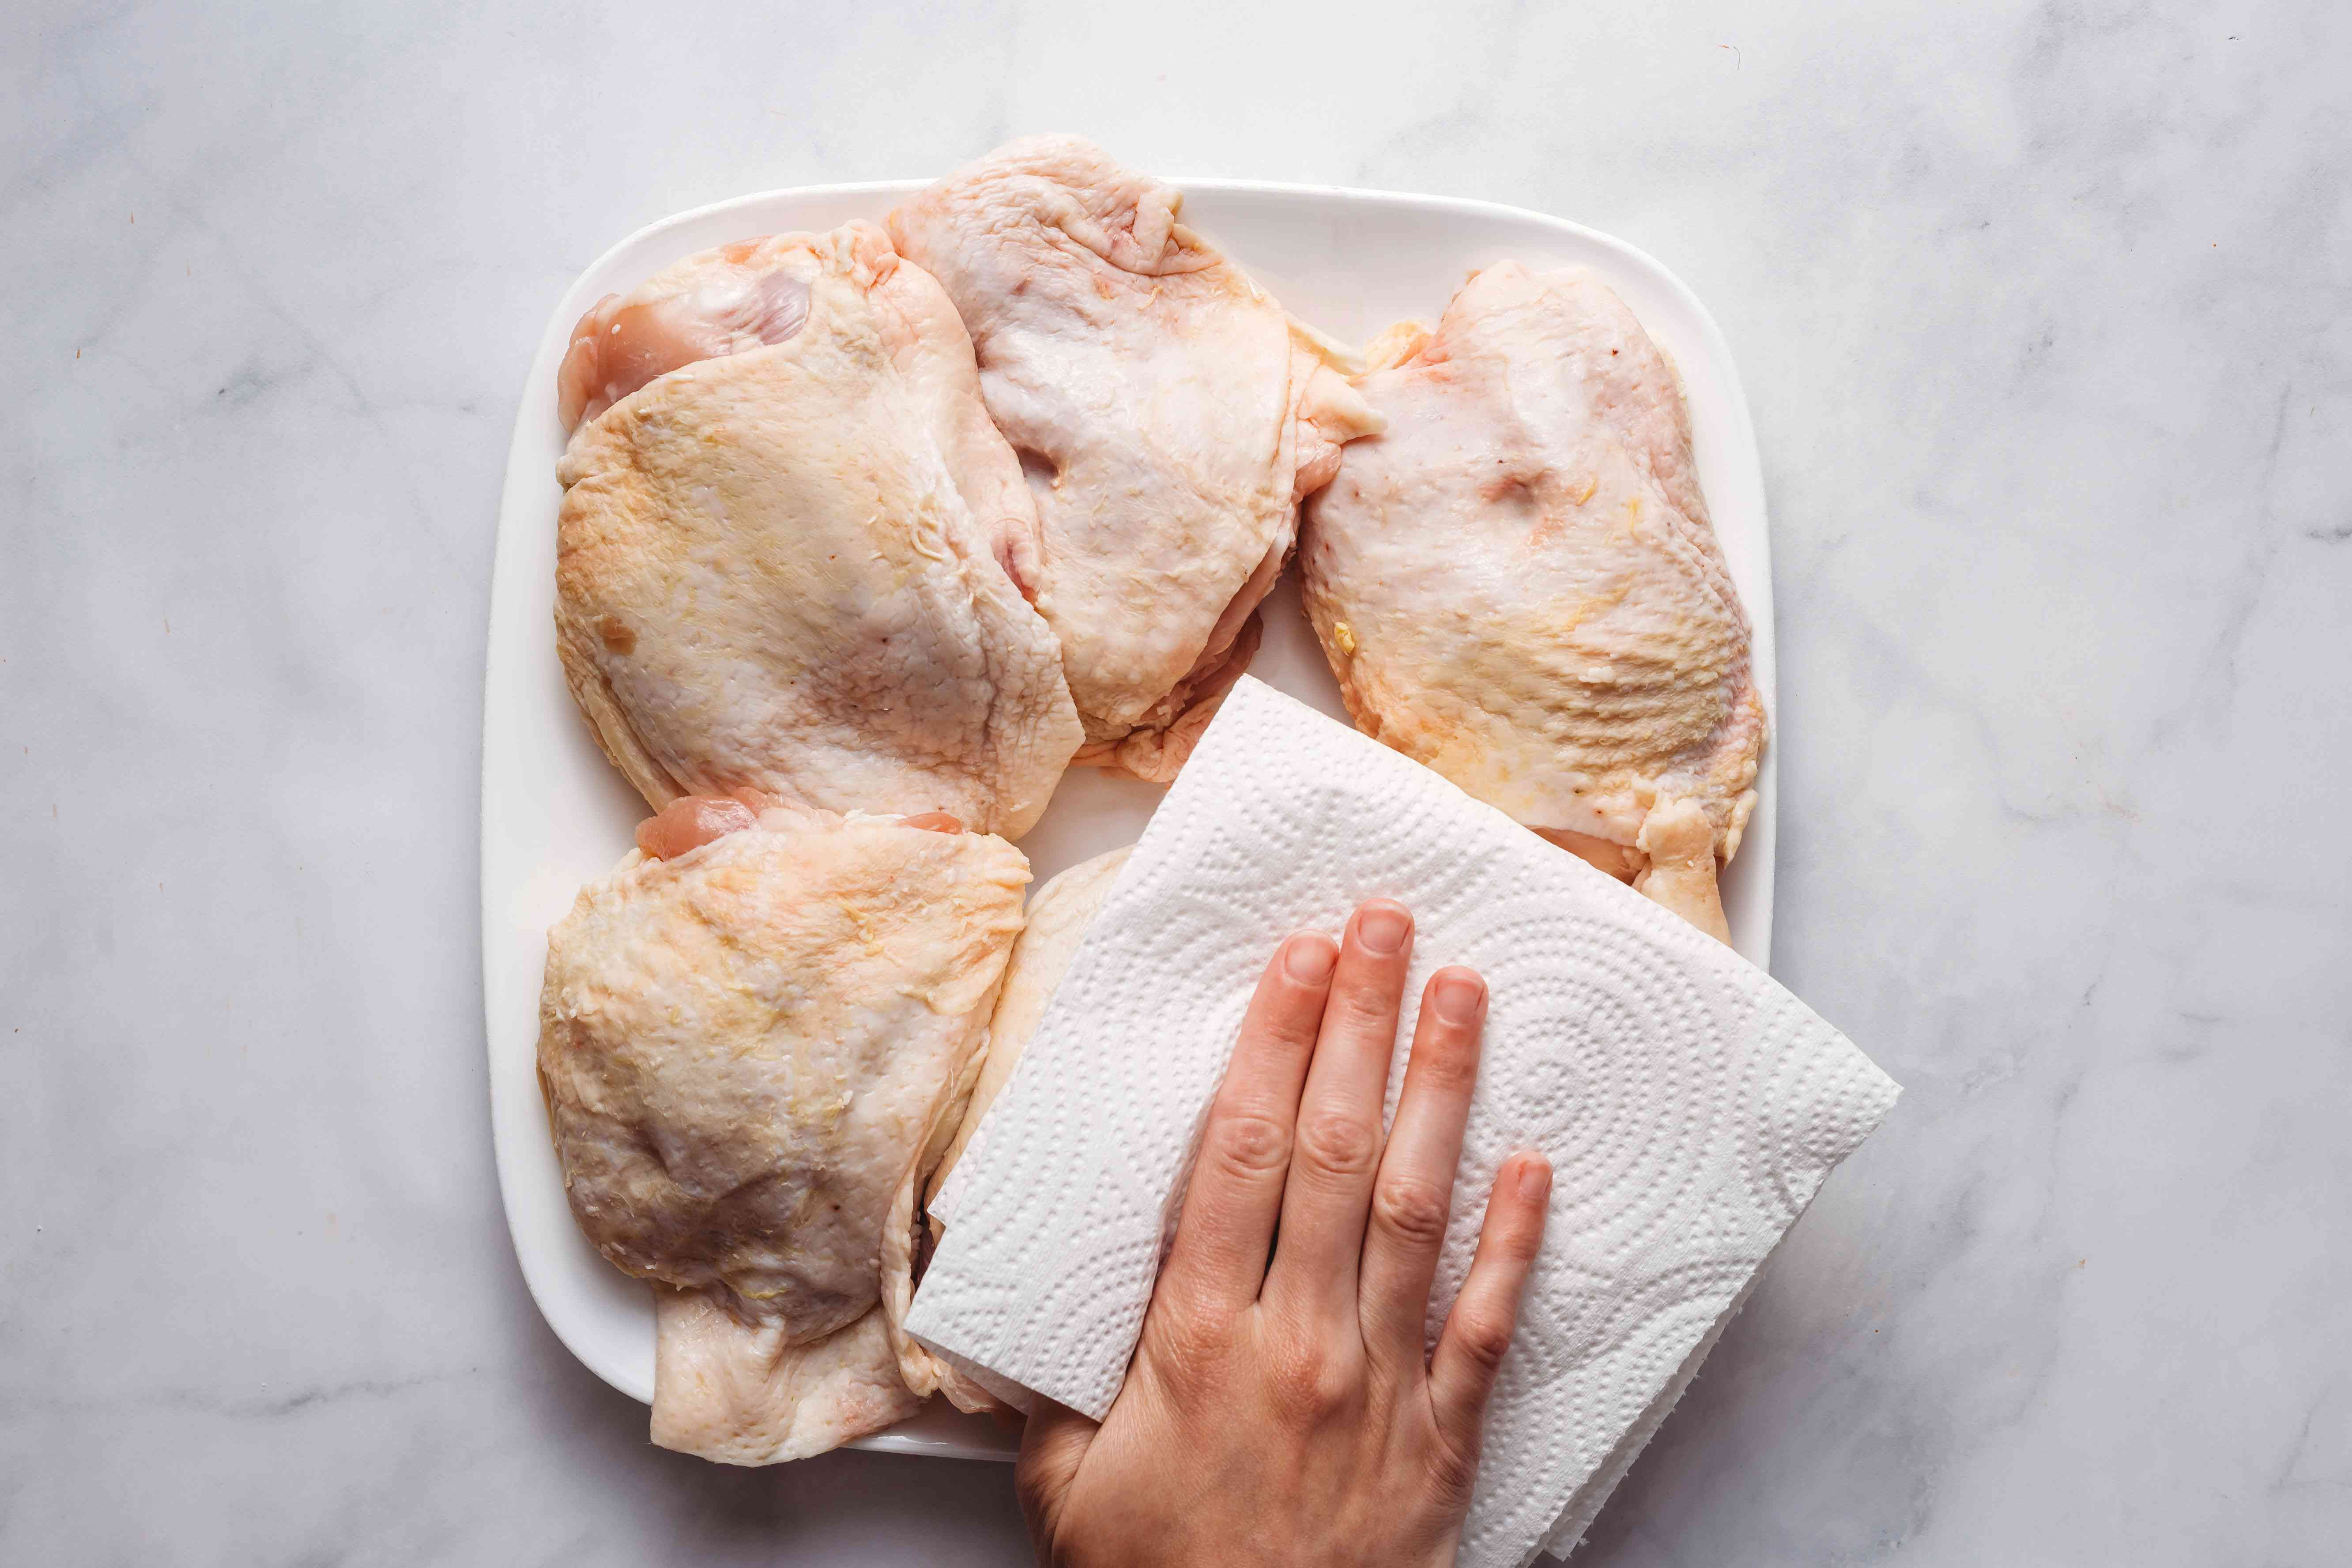 Pat the chicken thighs dry with a paper towel